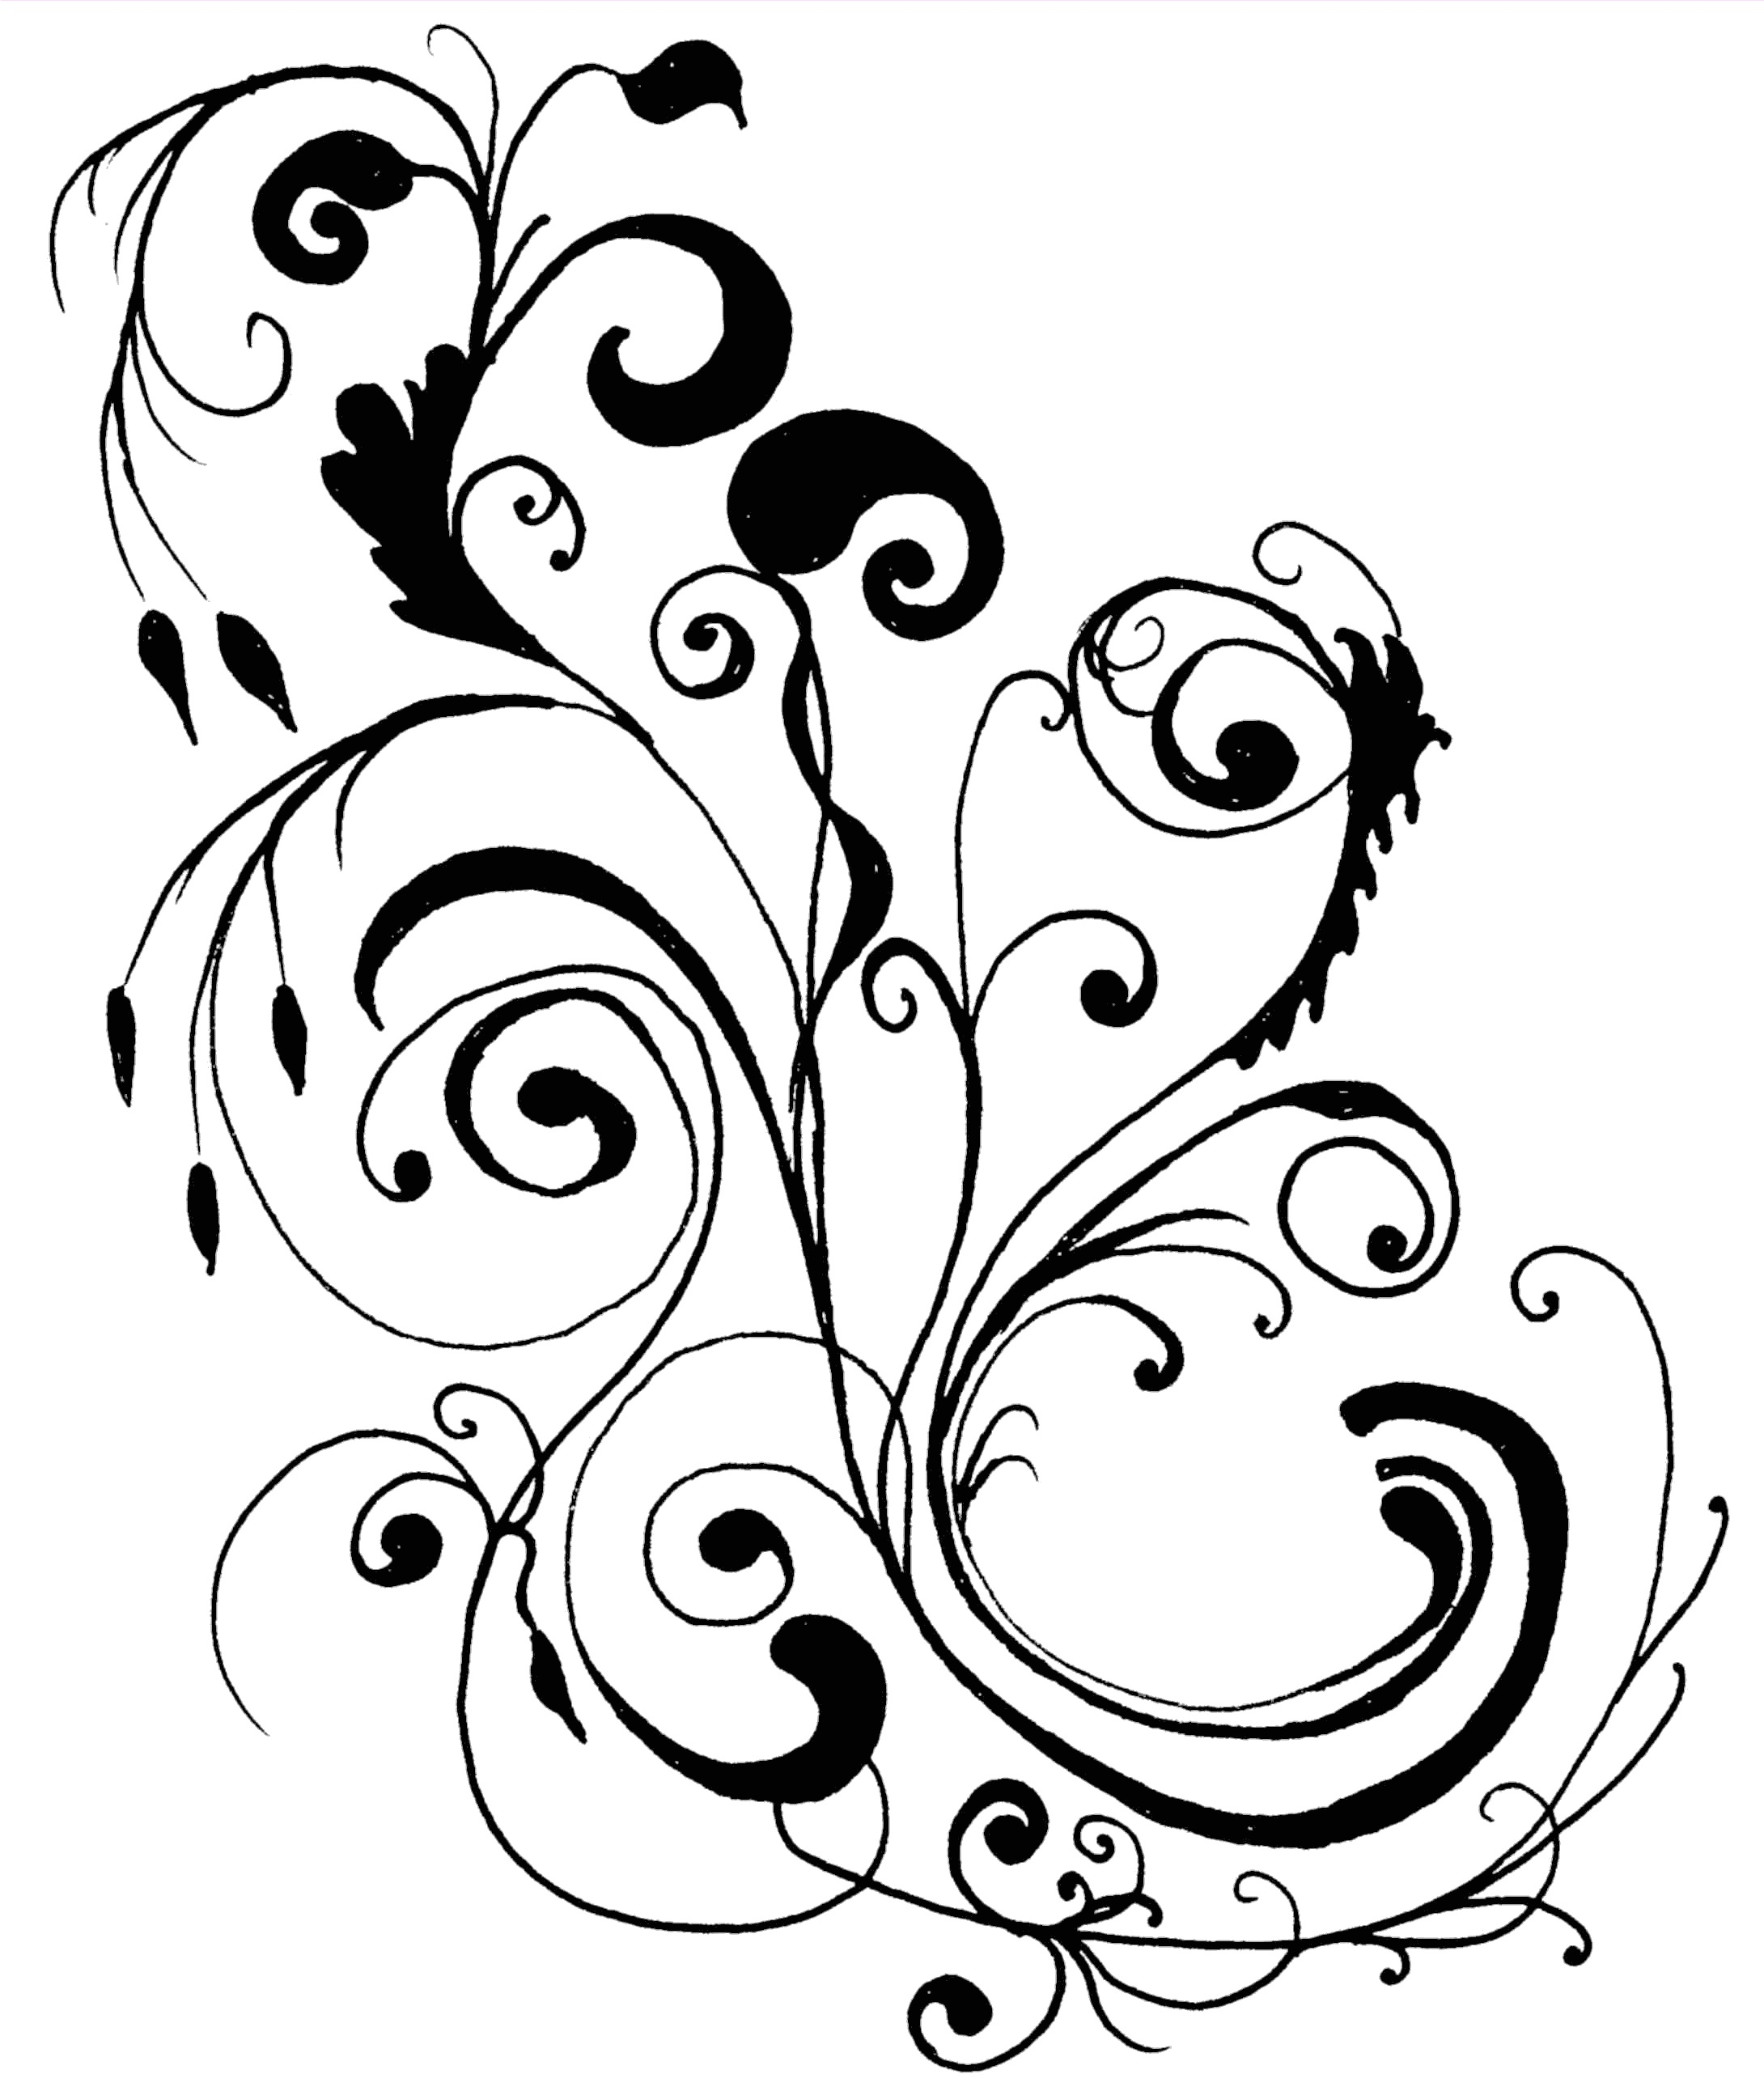 Wedding Card Line Art Designs : Flower clipart panda free images